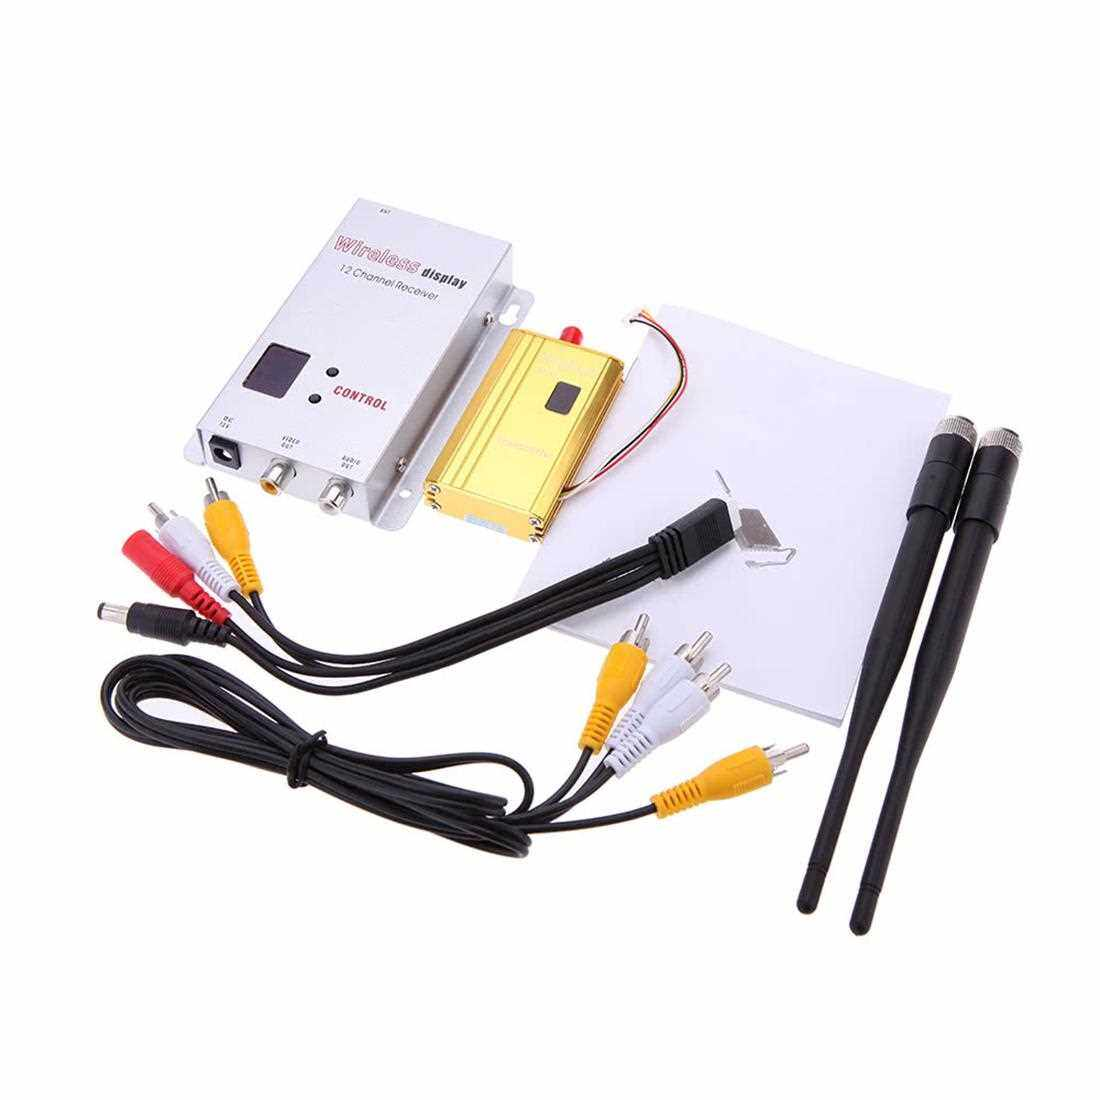 Best Selling 1500mW 1.2G Wireless 8CH Transmitter 12CH Receiver Digital Camera VCD/DVD Players AV Audio & Video Transmission System for Displayer Monitor FPV OSD (Gold+White)